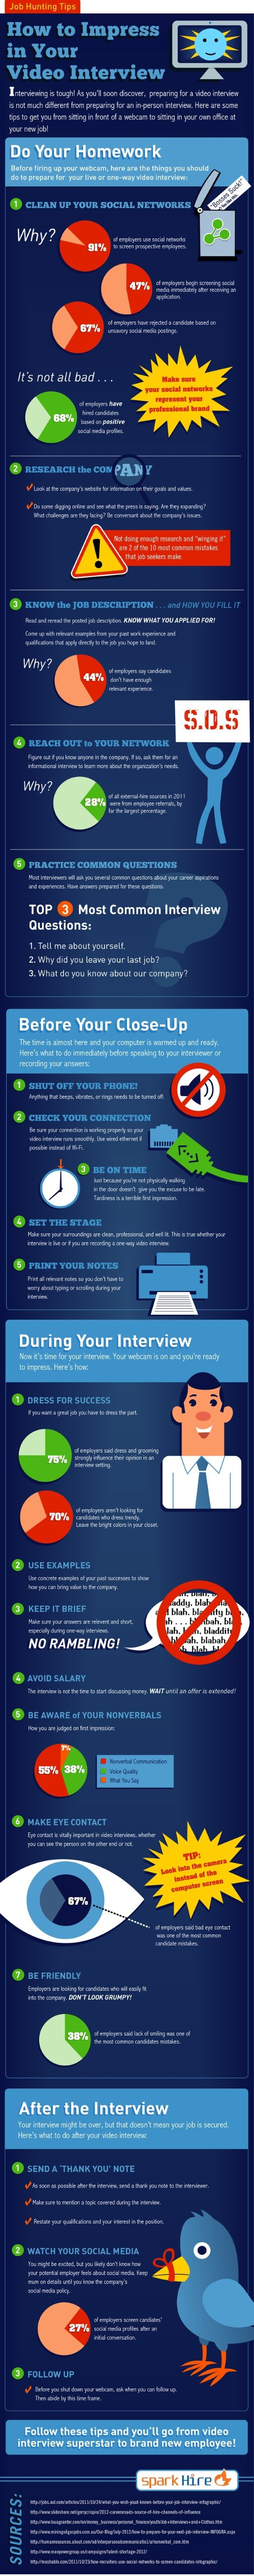 17 best images about interview tips tips for how to impress during your next virtual job interview infographic